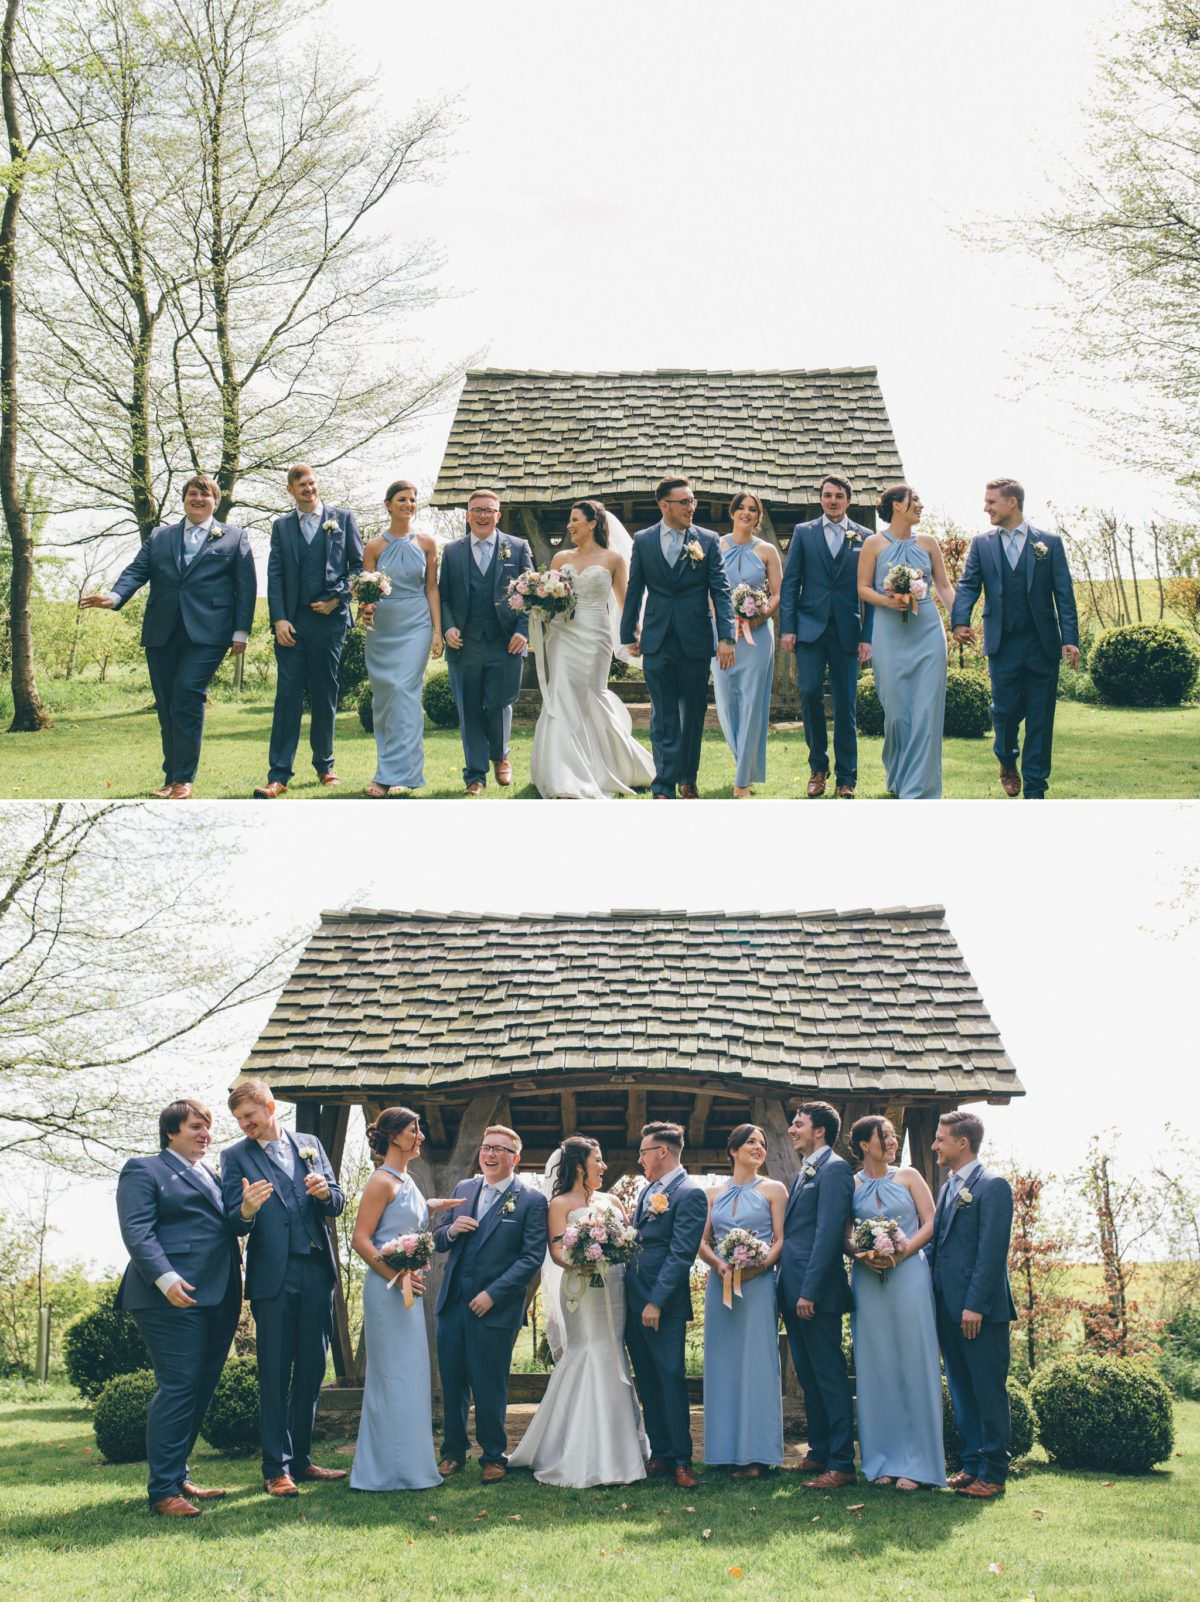 cripps_barn_gloucesterhsire_welsh_wedding_photographer_rachel_lambert_photography_jordan_amy_ 79